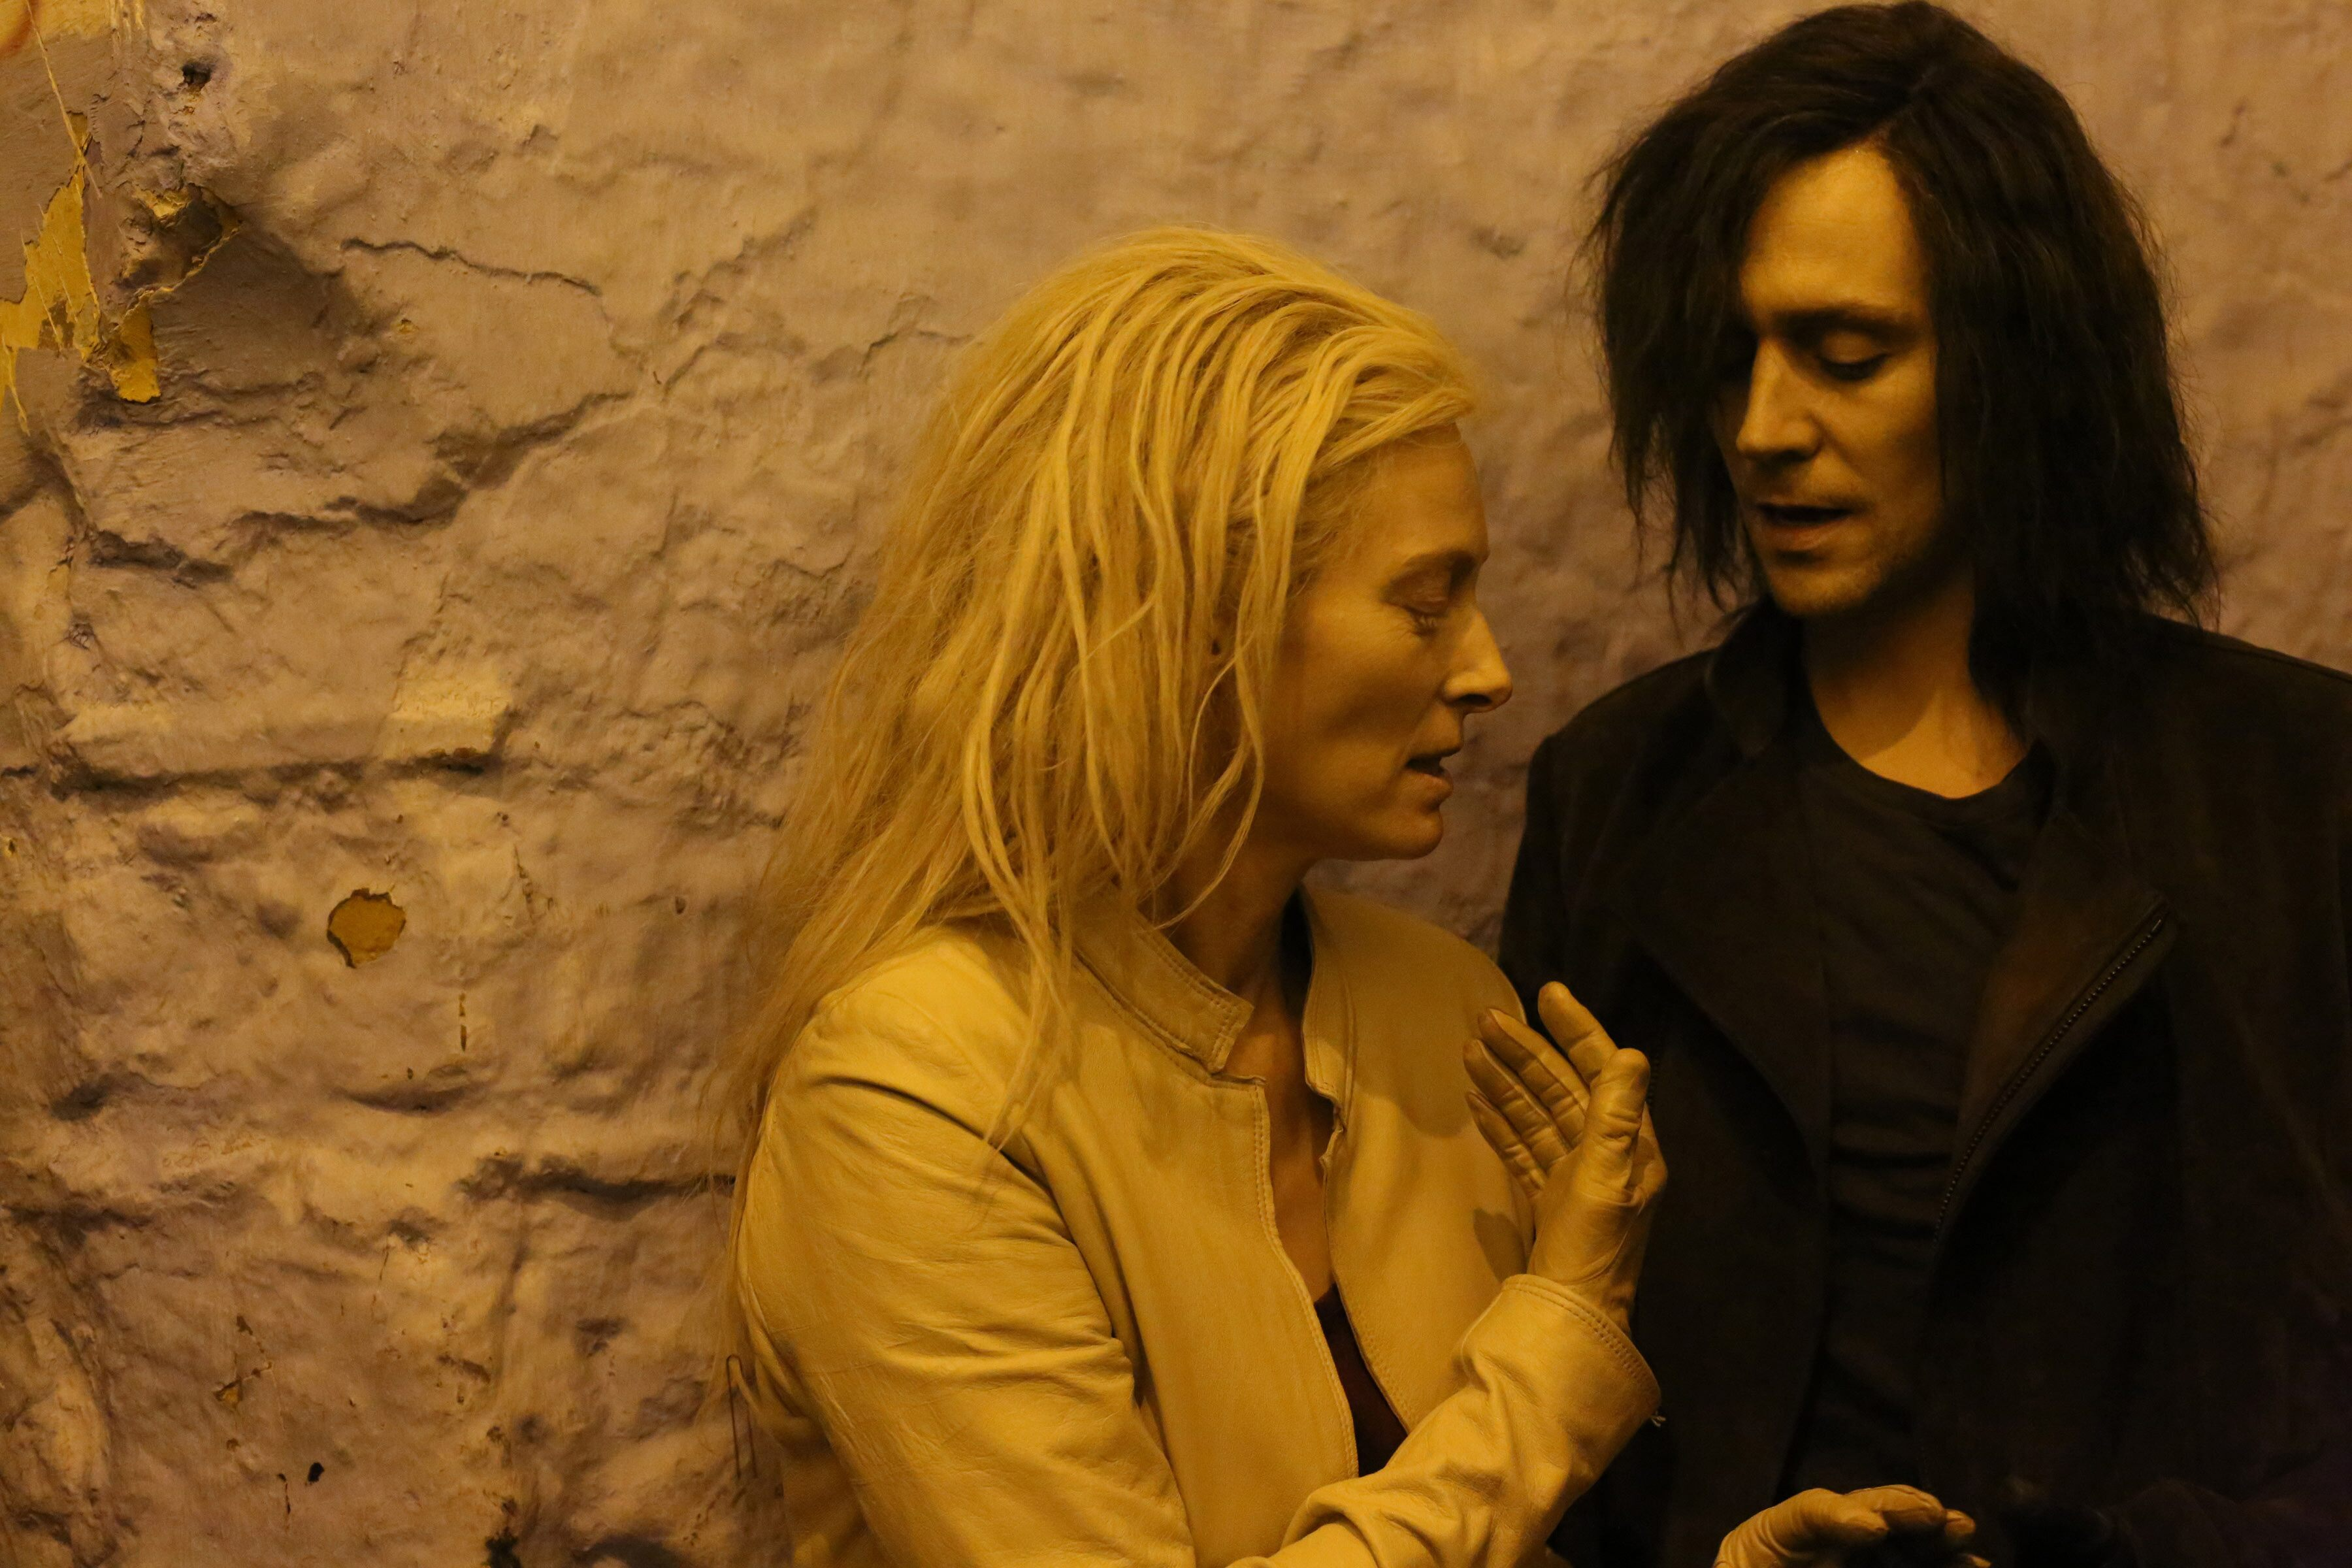 Tilda Swinton and Tom Hiddleston, in ONLY LOVERS LEFT ALIVE (2013)